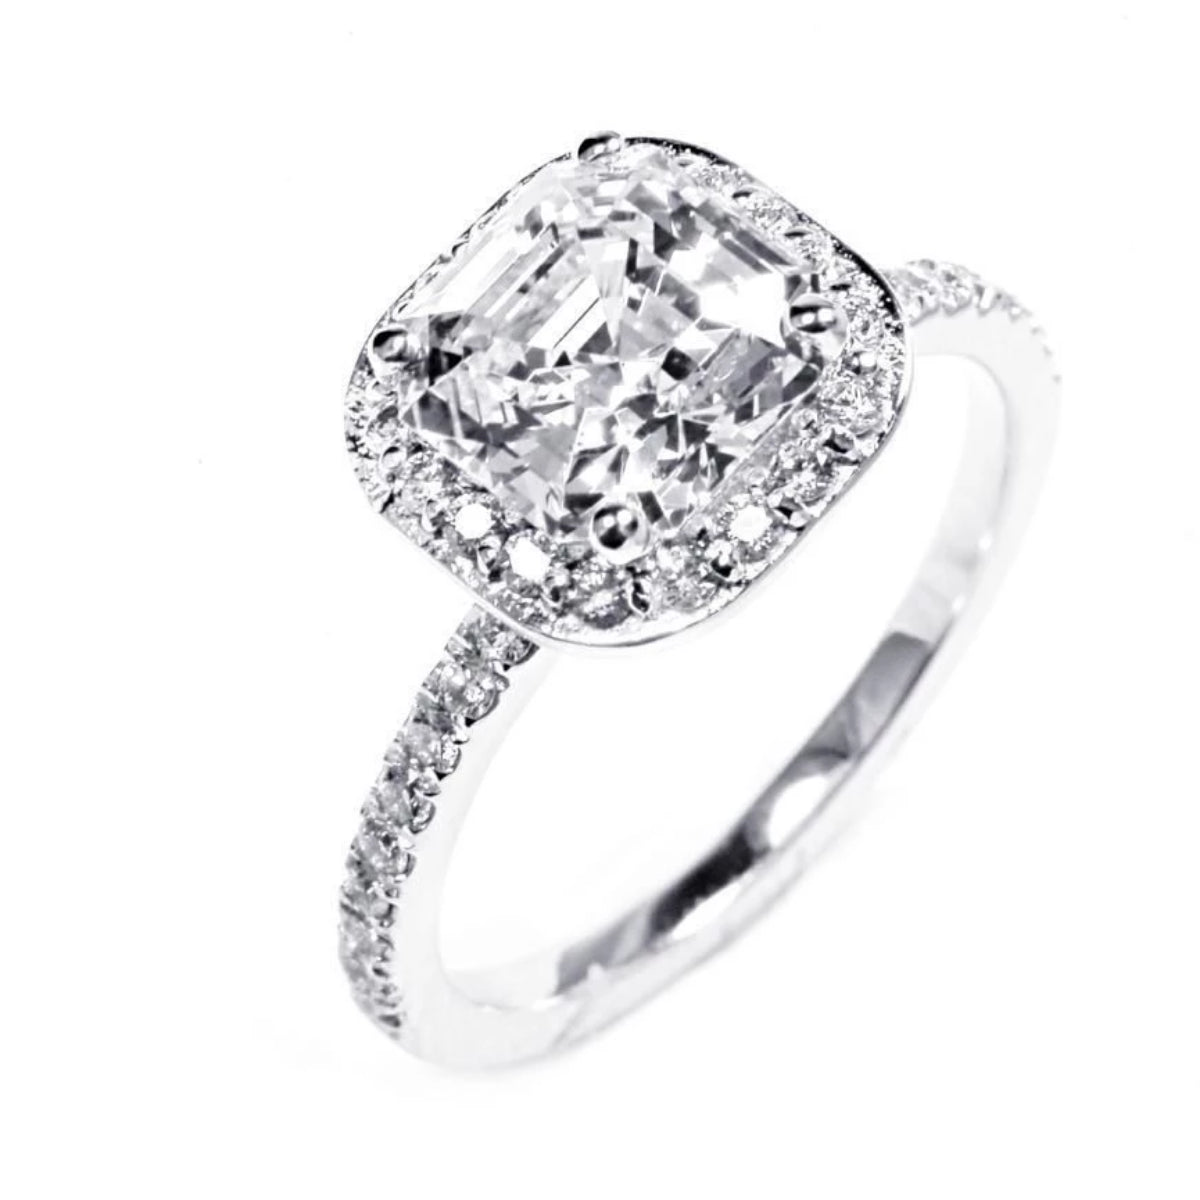 kim the carey ring of carat time best engagement all rings kardashian middleton vogue article kate celebrity mariah